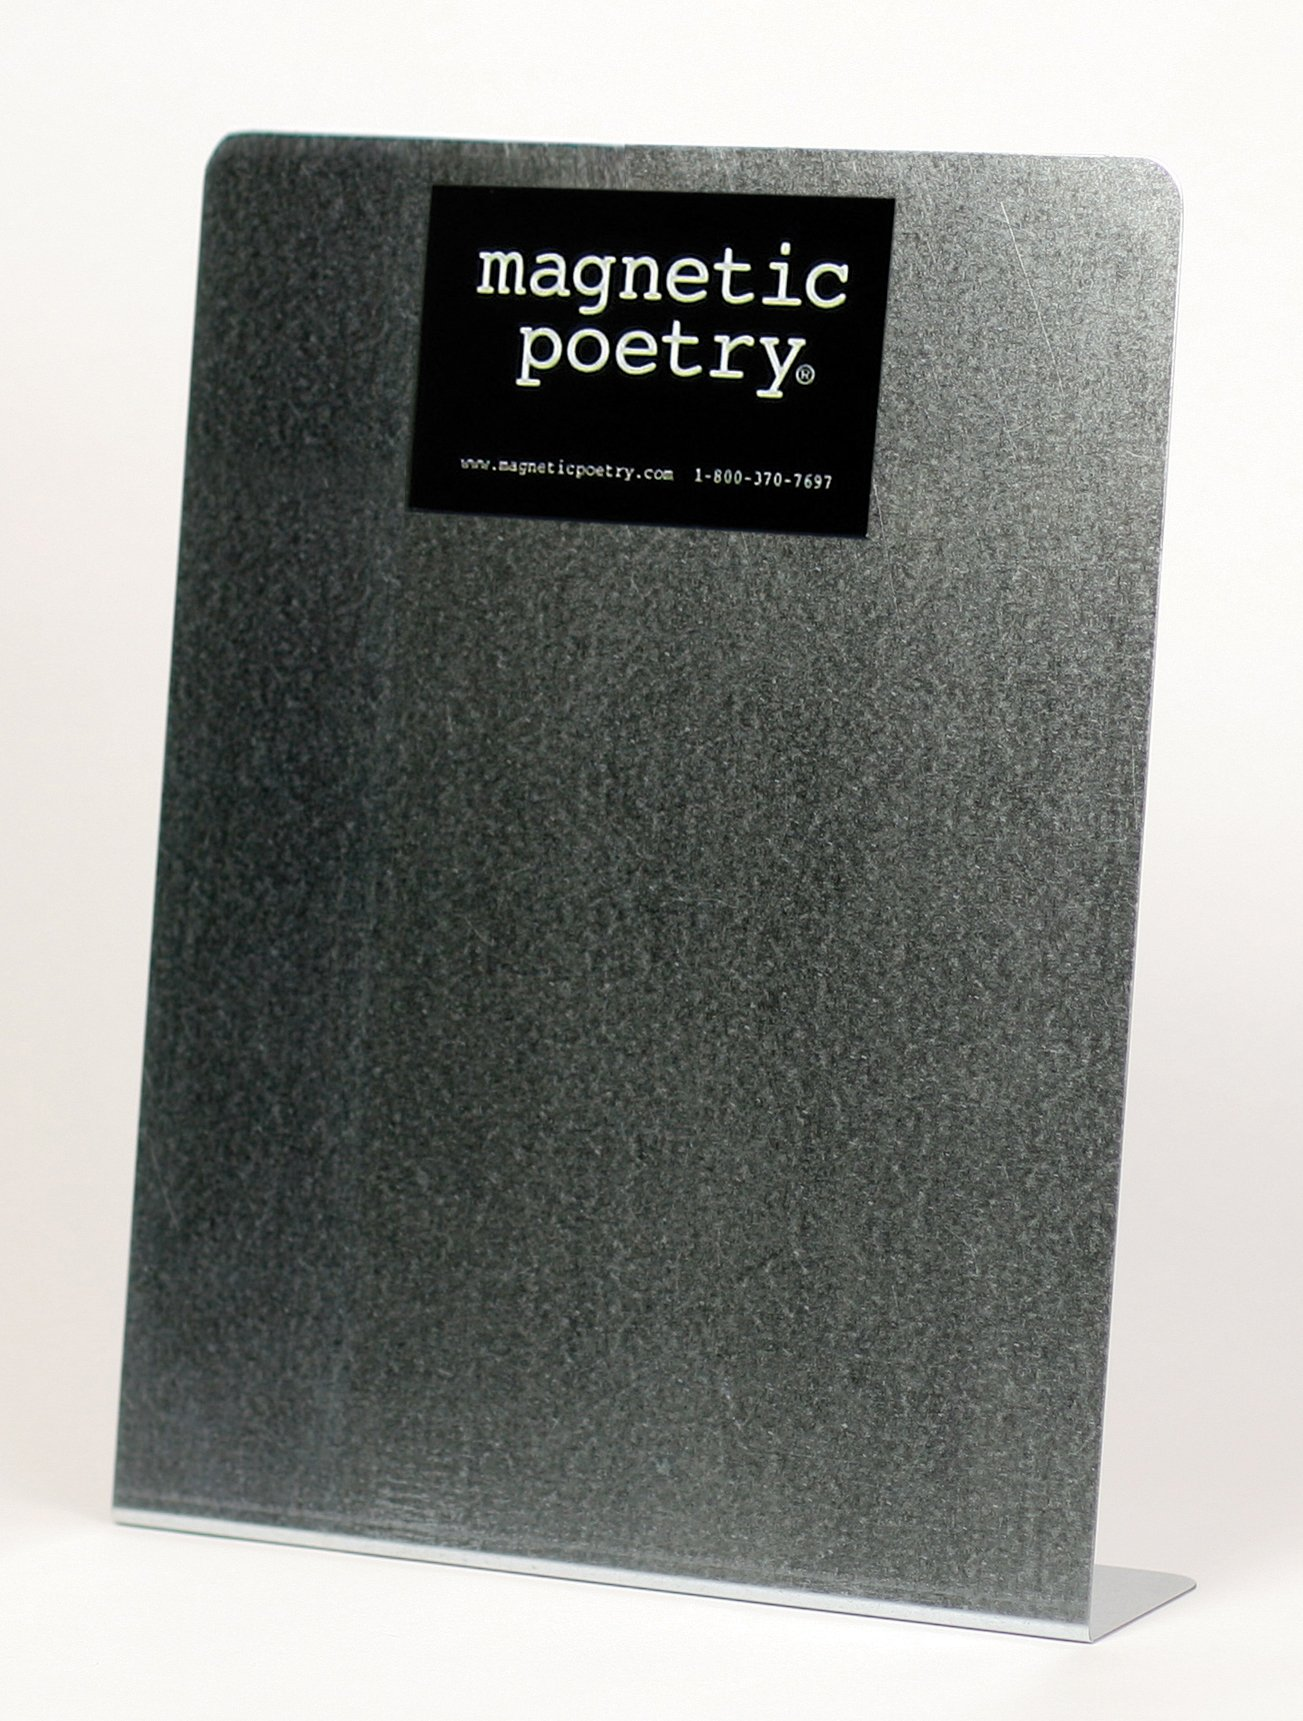 Magnetic Poetry Educational Products - Metal Easel Board - 6x8 Inches